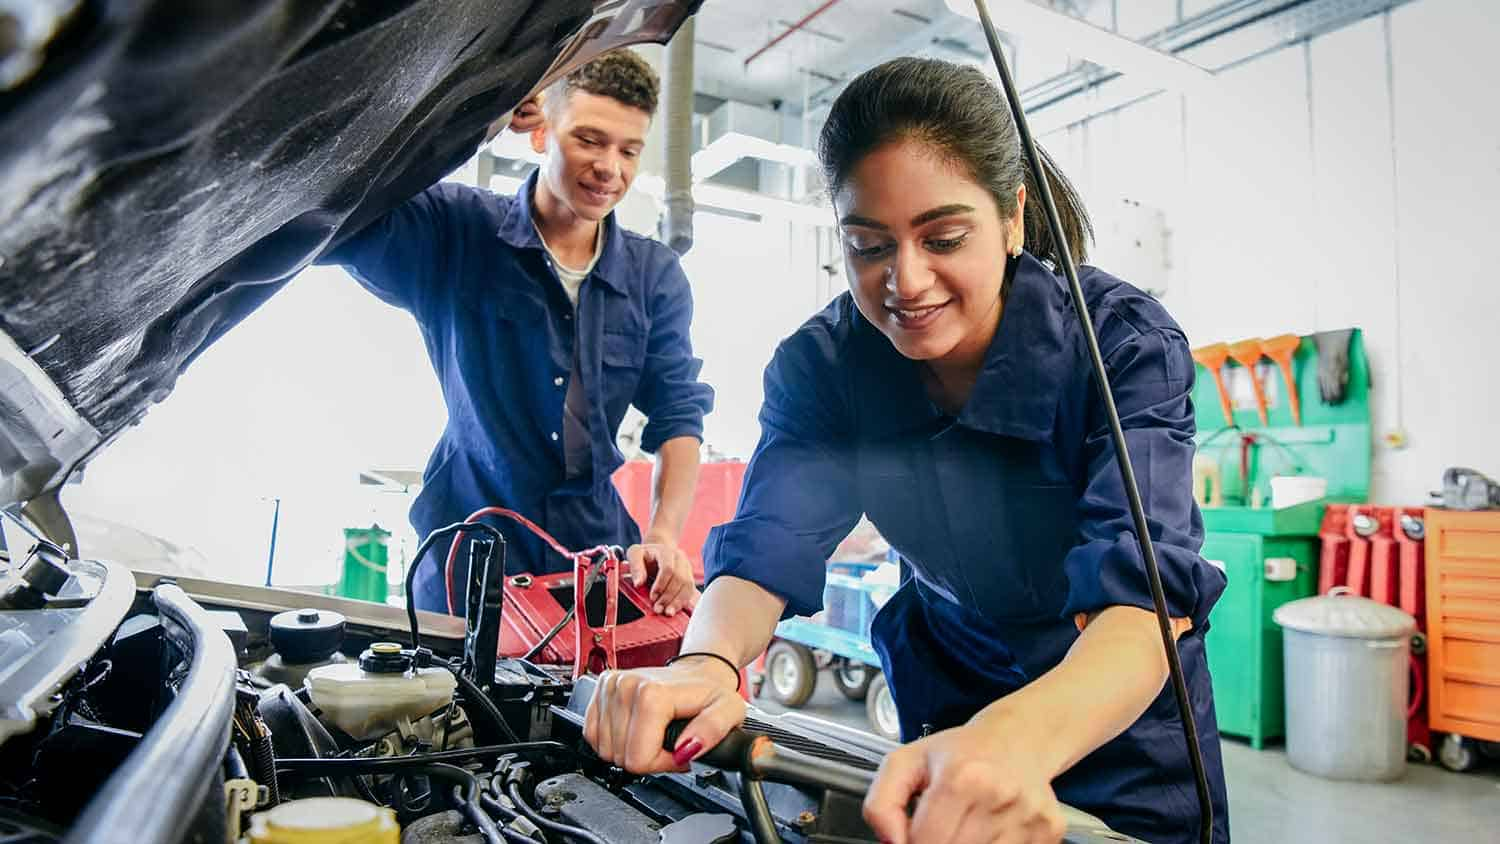 Two young car mechanics working